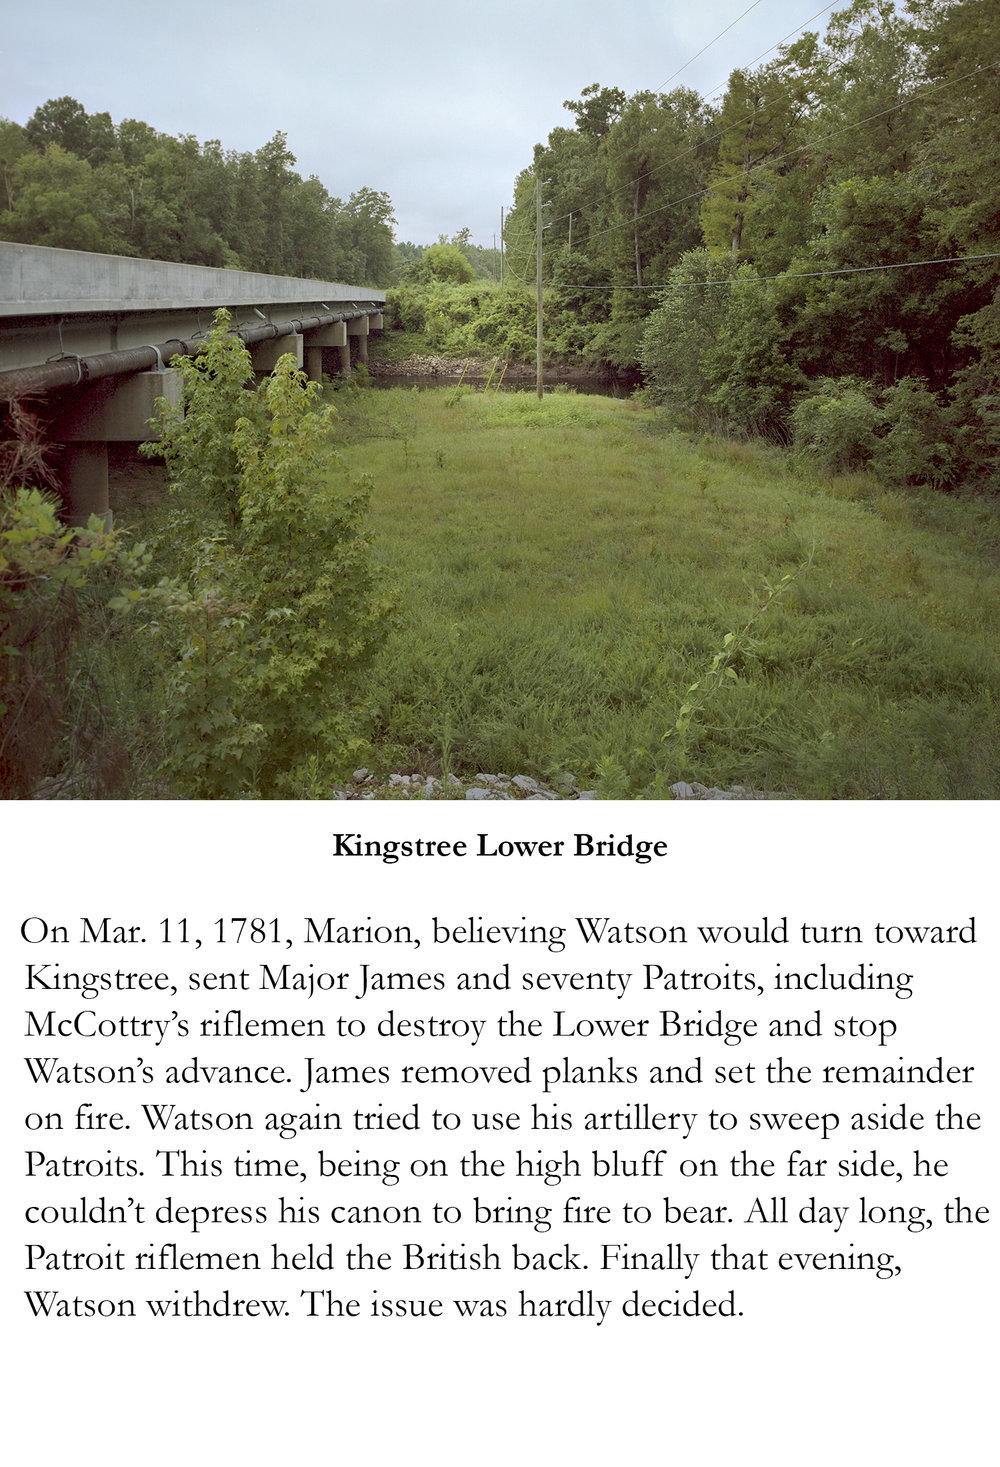 Kingstree Lower Bridge.jpg